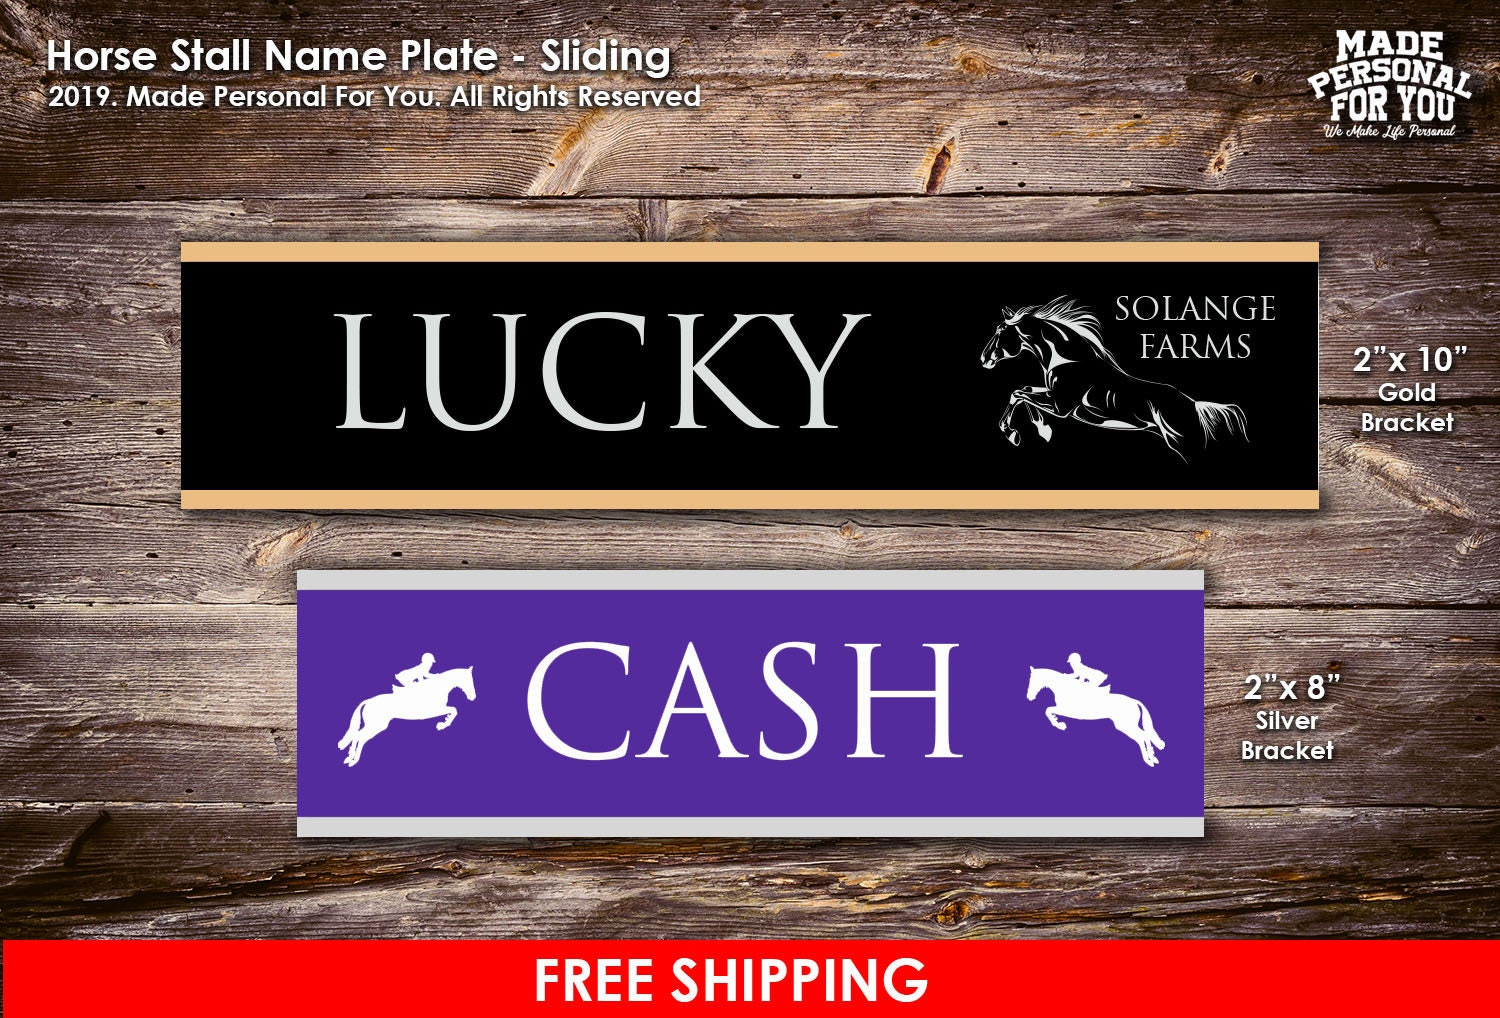 Sliding Horse Stall Name Plate Laser Engraved Personalization Two Sizes